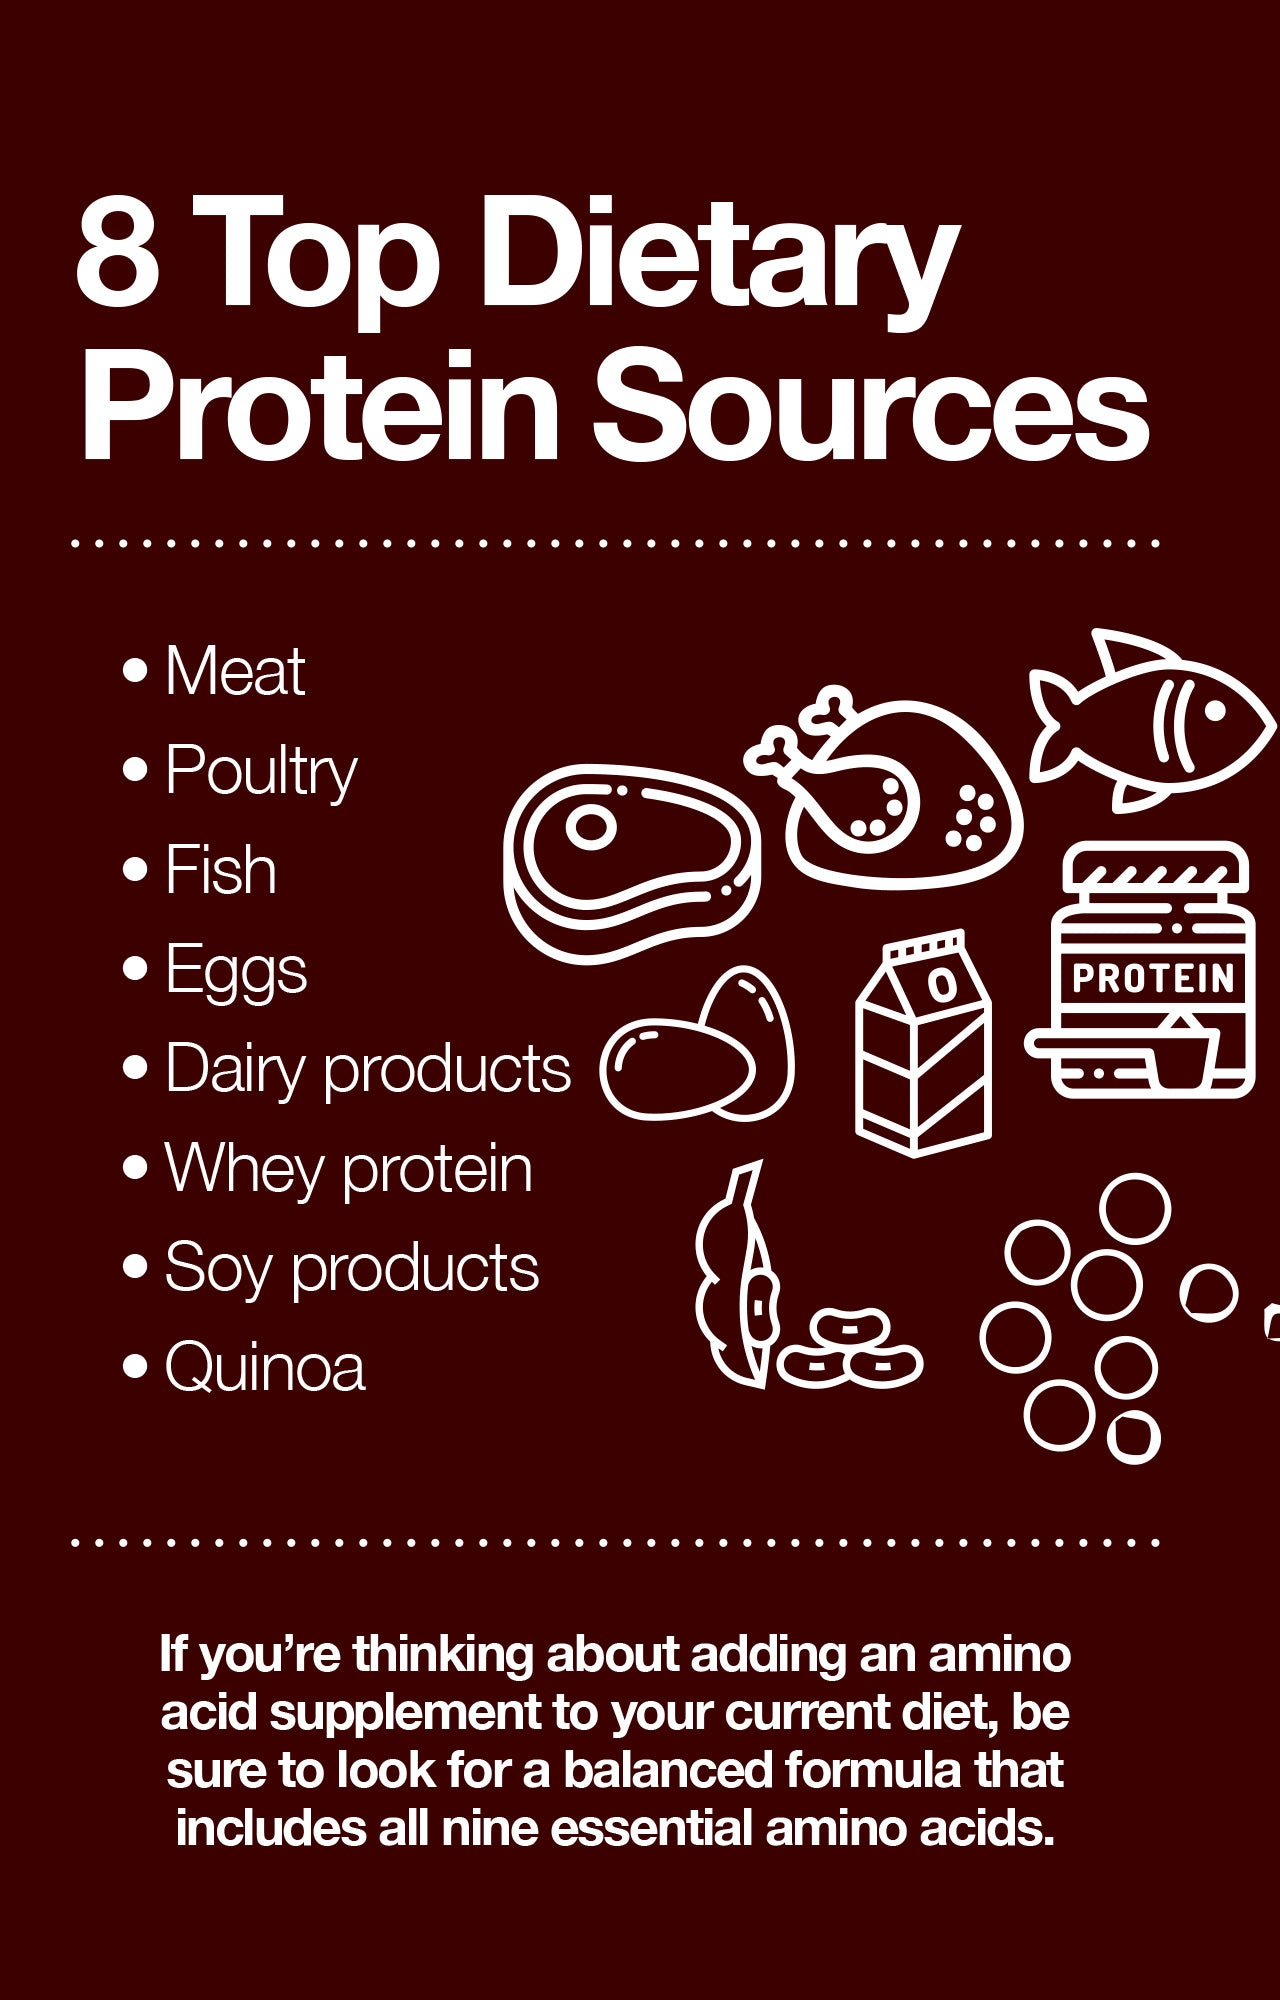 8 Top Dietary Protein Sources